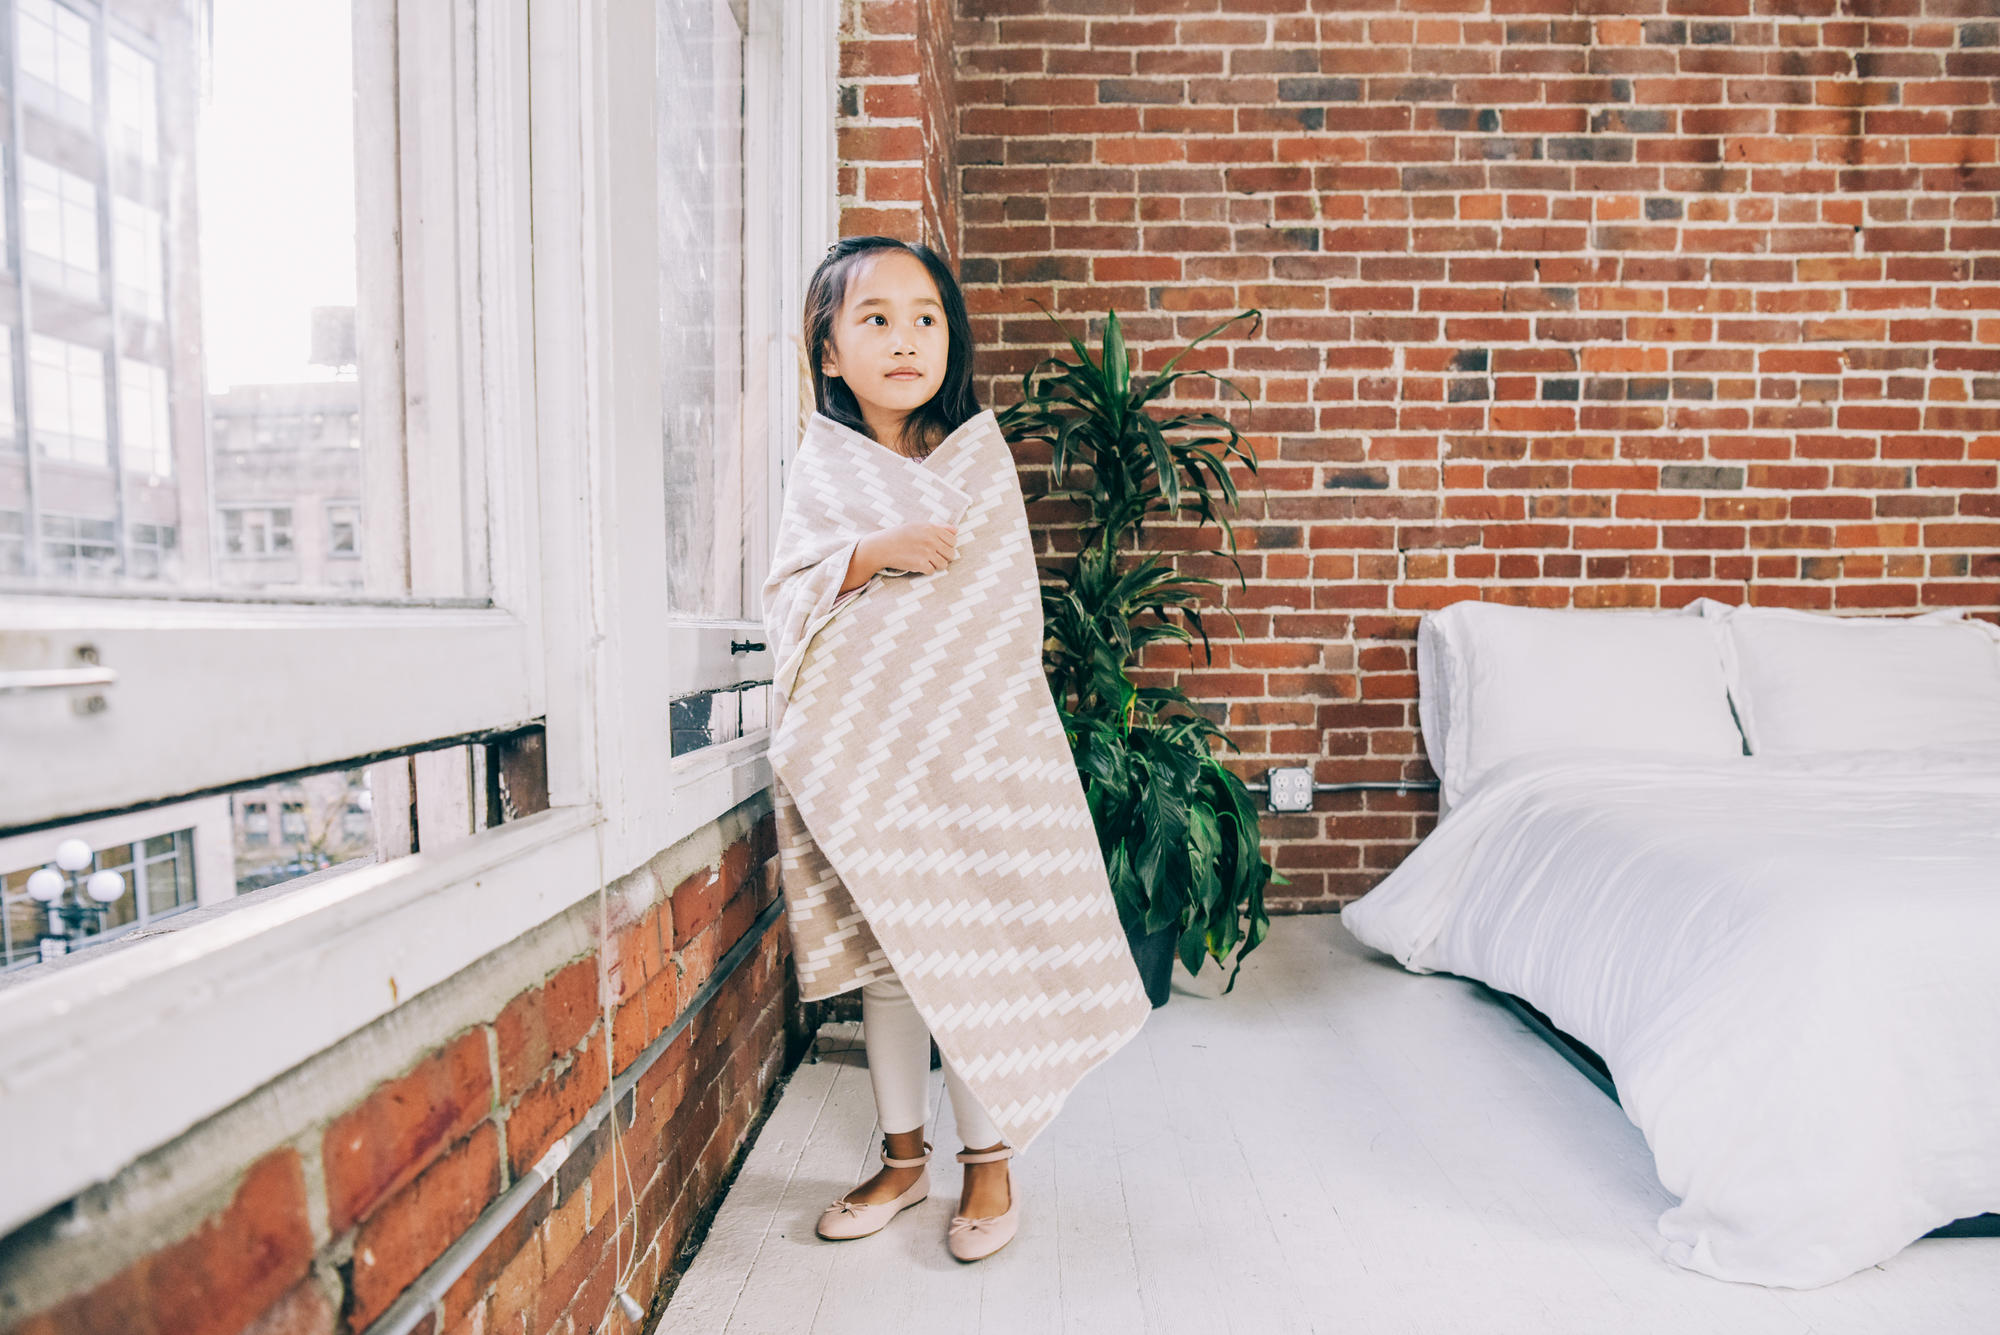 kid by window wrapped in blanket